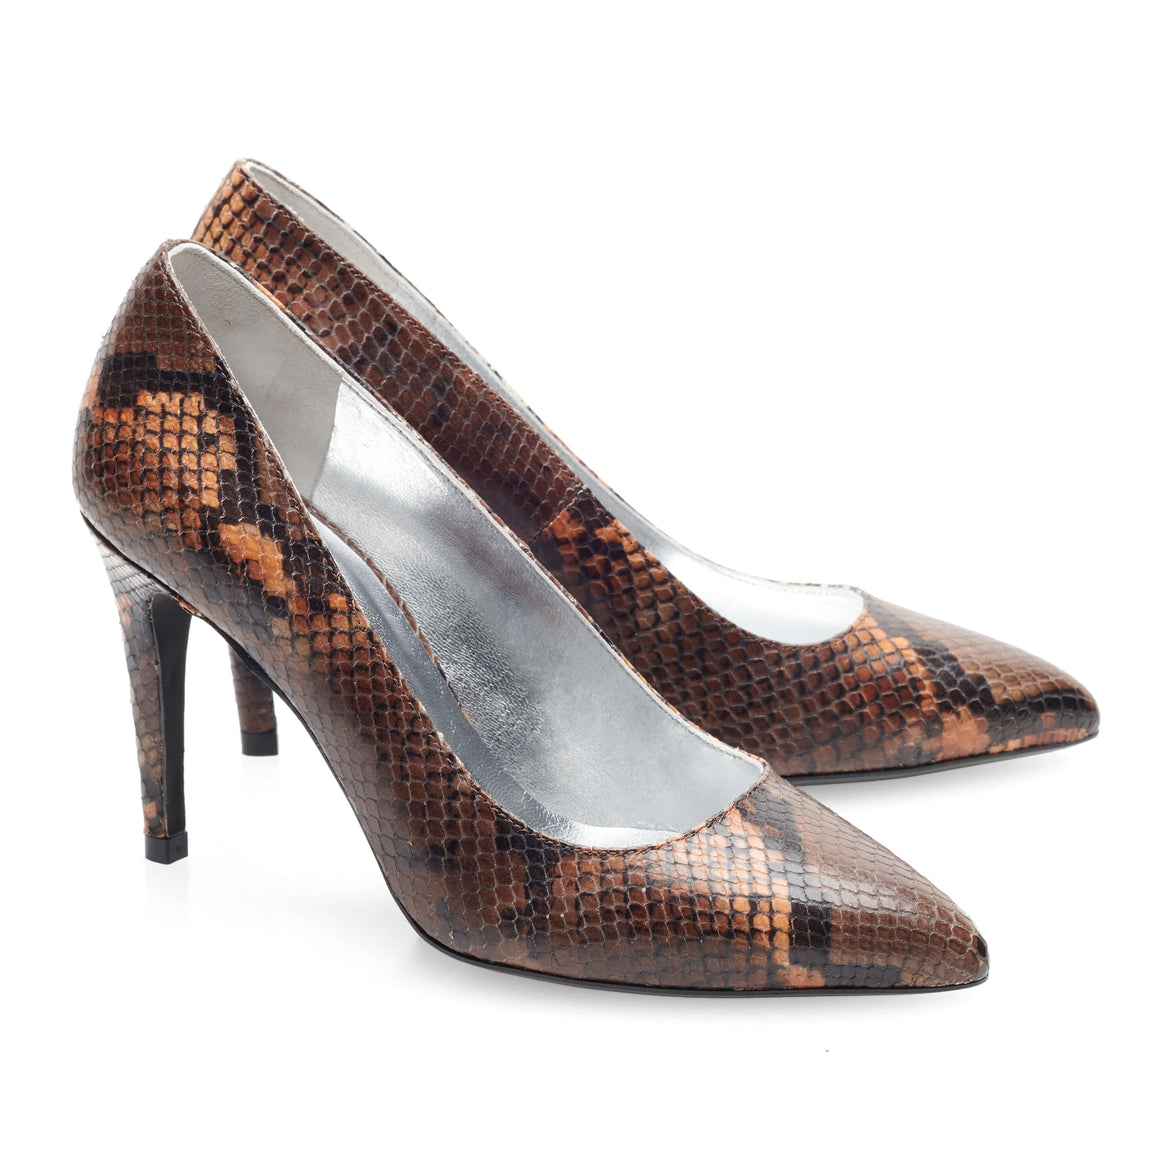 Image 1 of Francesca  Brown Caramel Pumps from Bisous Confiture